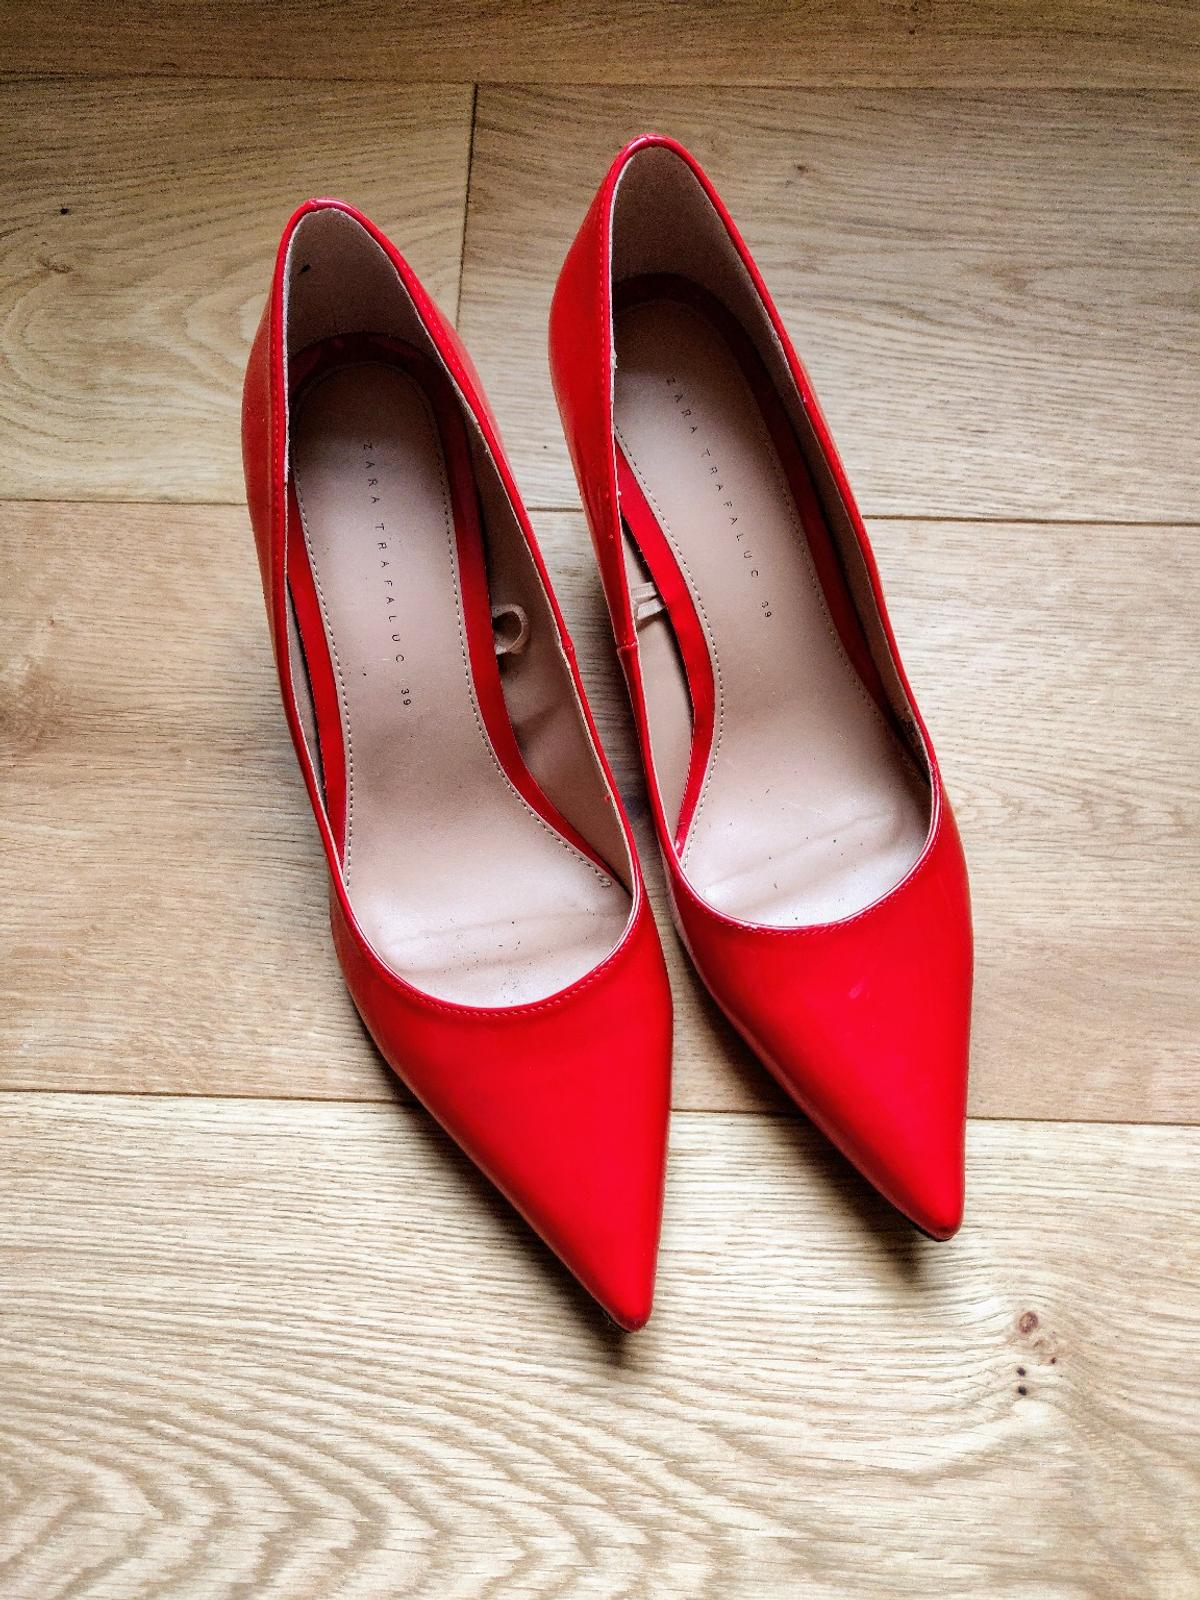 18bddbe9613 Zara red heel shoes Size 6